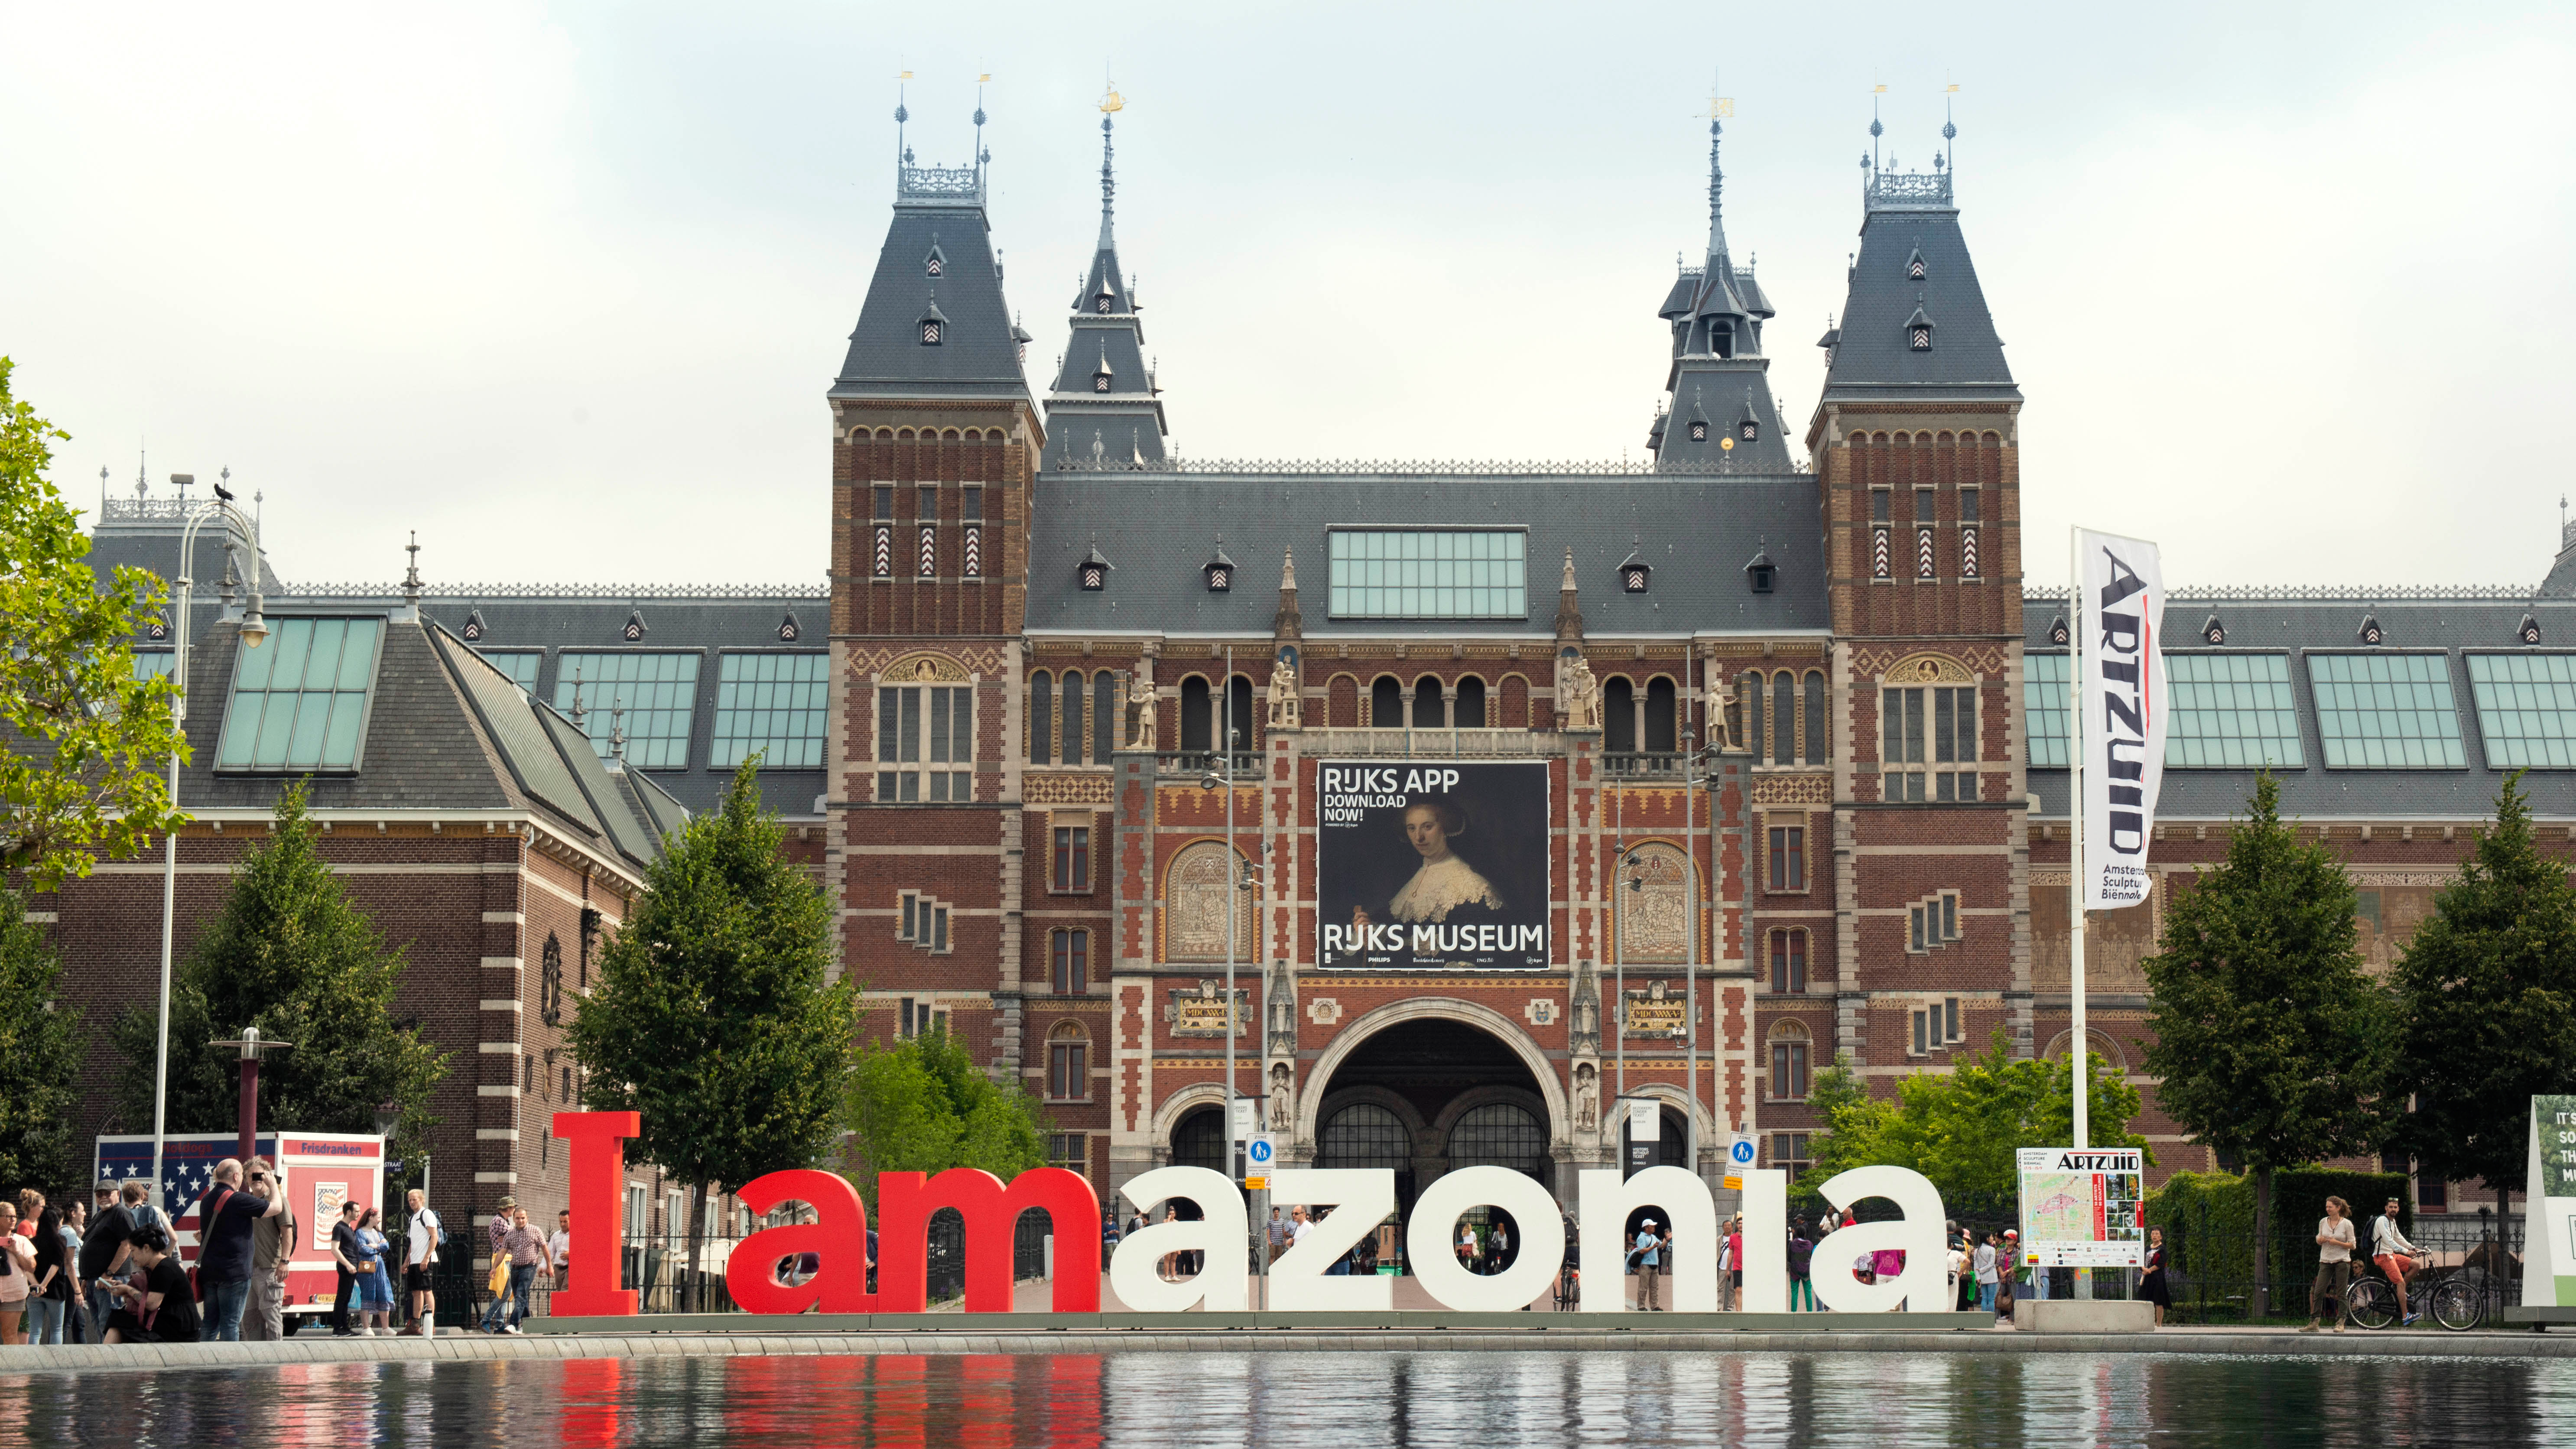 'I amsterdam' sign returns with a powerful new message   Creative Bloq